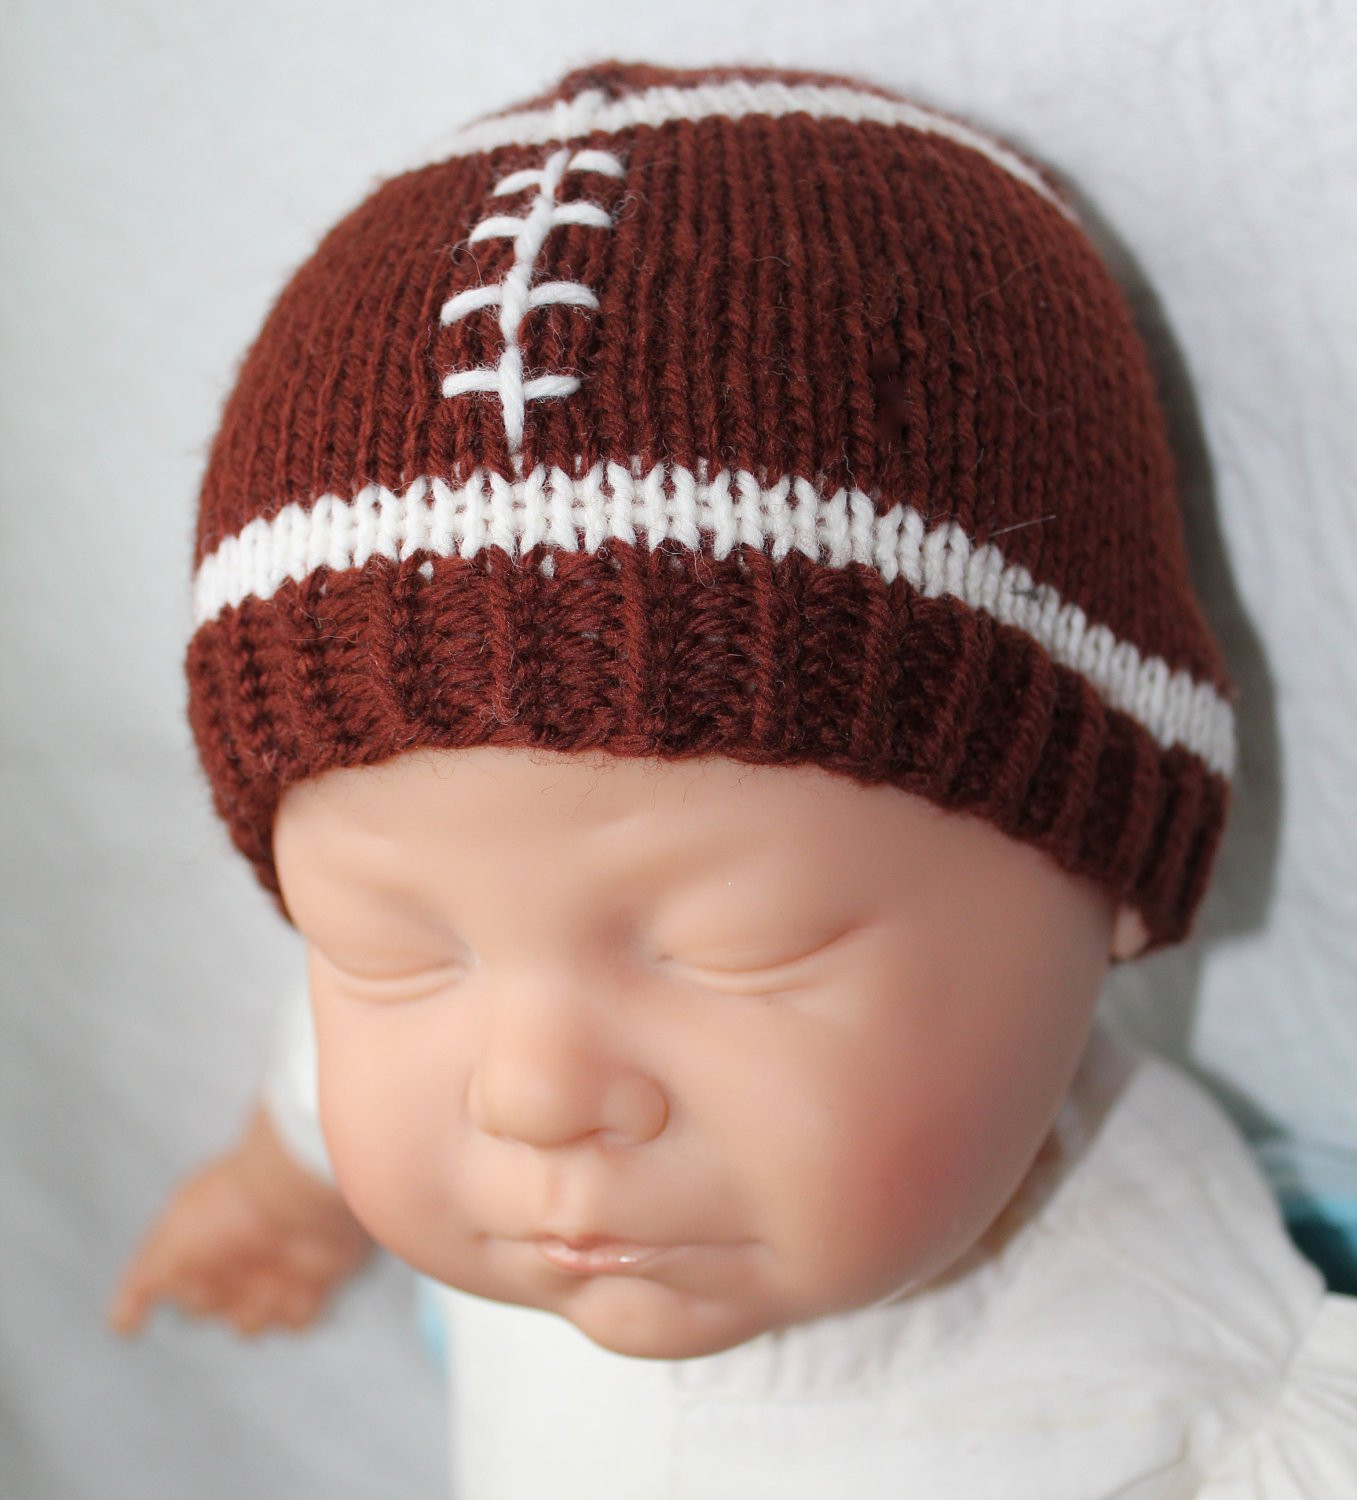 Baby Hat Knitting Pattern Luxury Knitting Pattern Football Baby Hat Size 0 to 3 and 6 to 12 Of New 44 Pictures Baby Hat Knitting Pattern